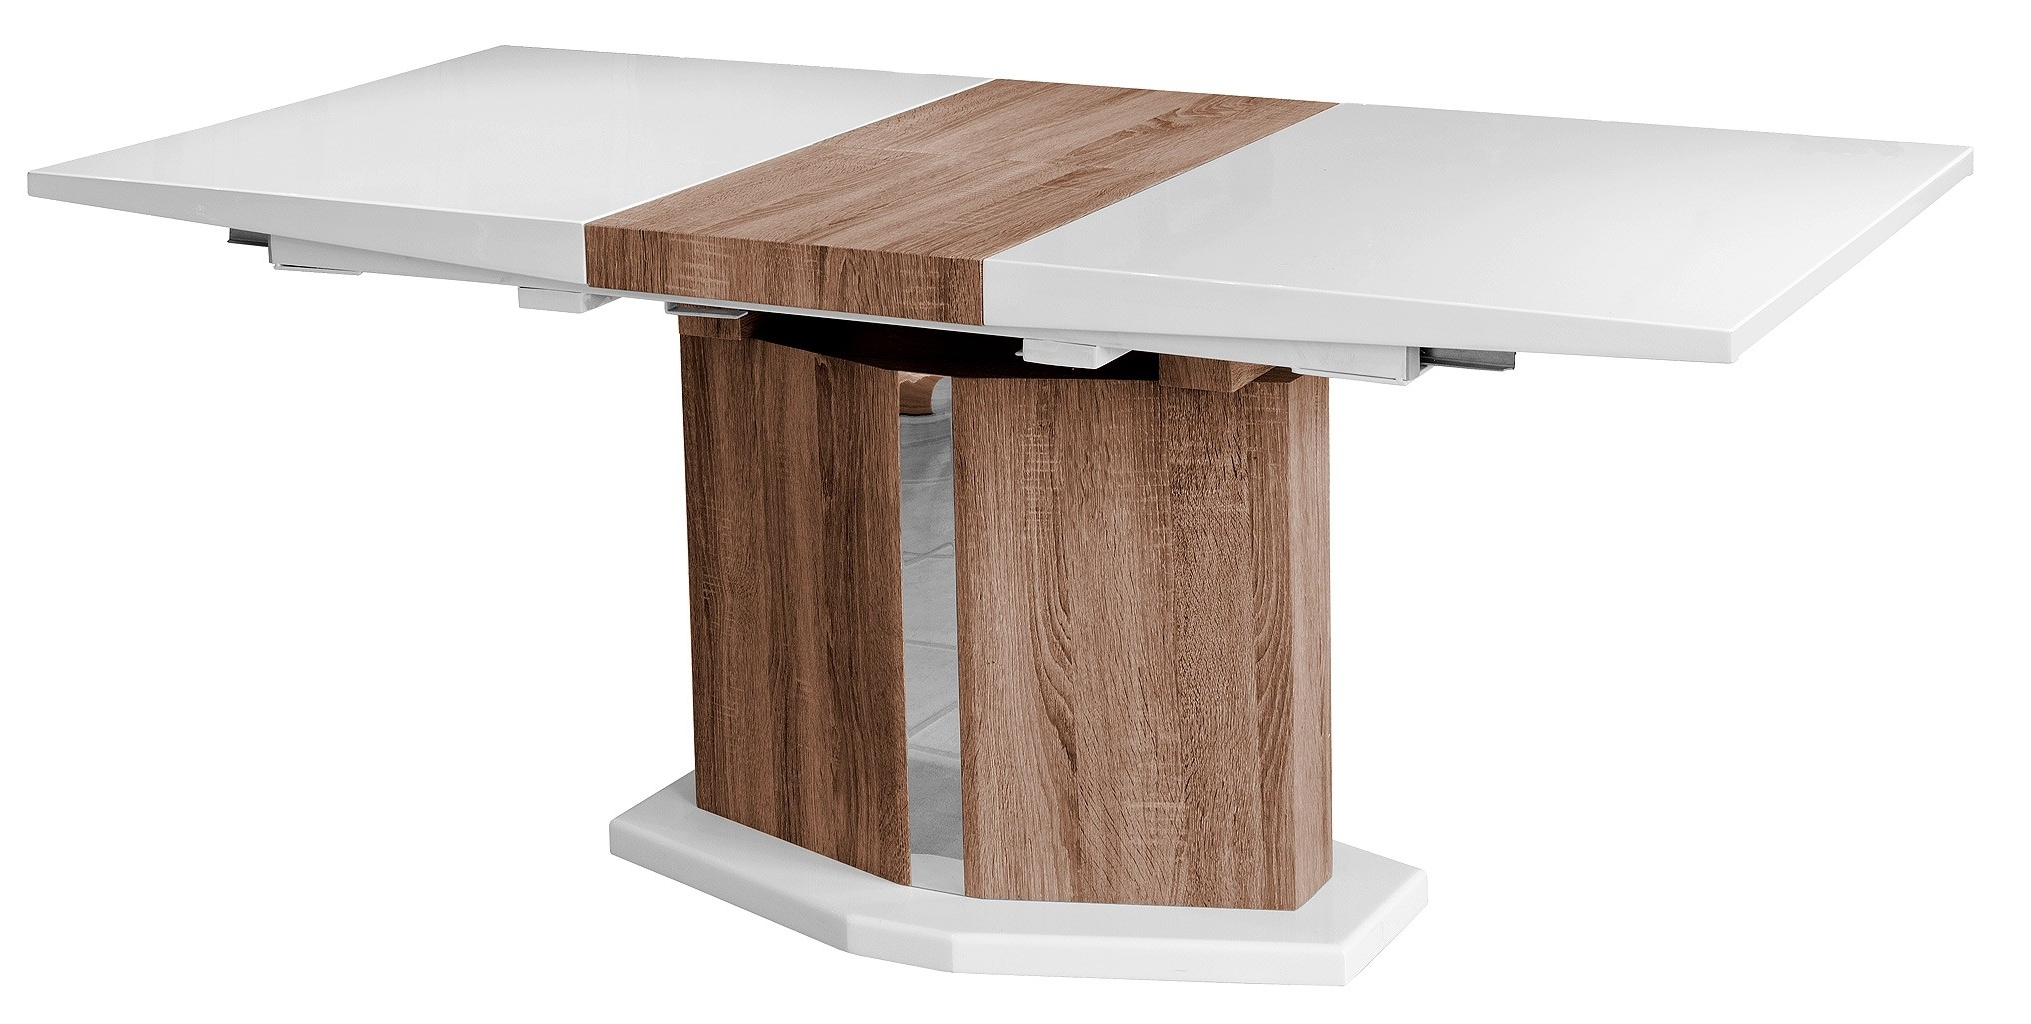 Most Recent High Gloss White Extending Dining Table – Be Fabulous! In Dark Wood Extending Dining Tables (View 9 of 25)